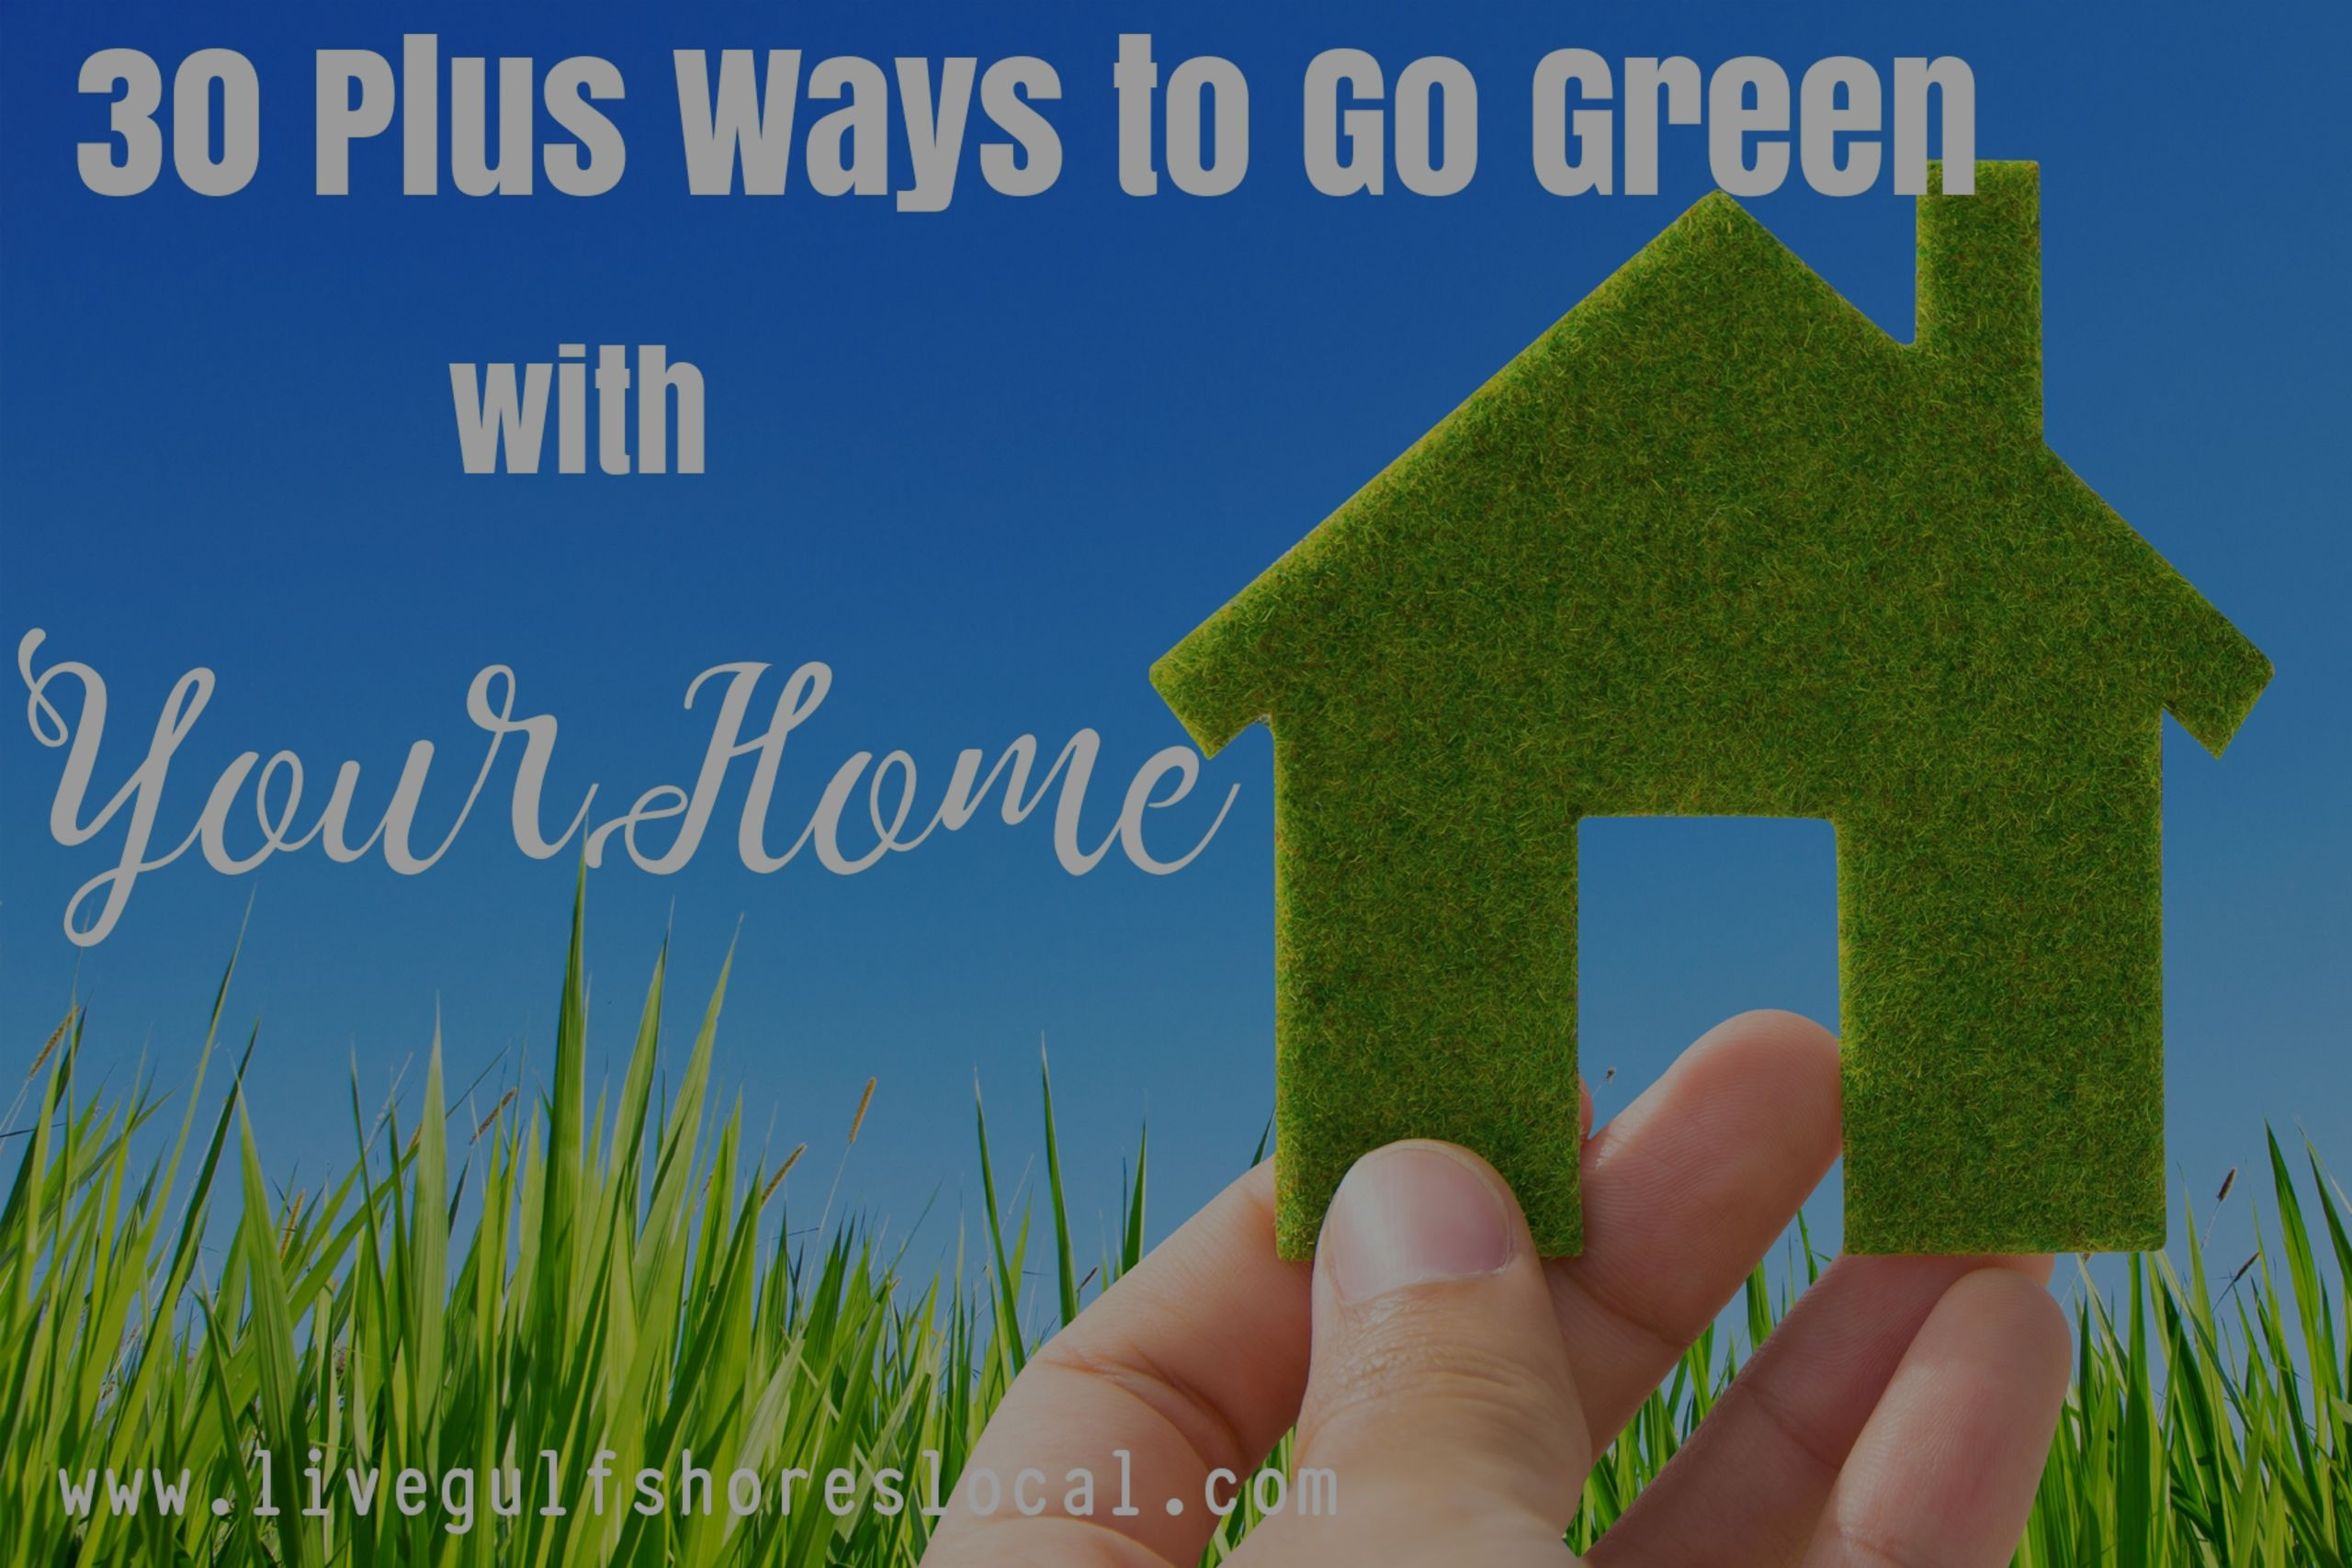 30 Plus Ways to Go Green with Your Home